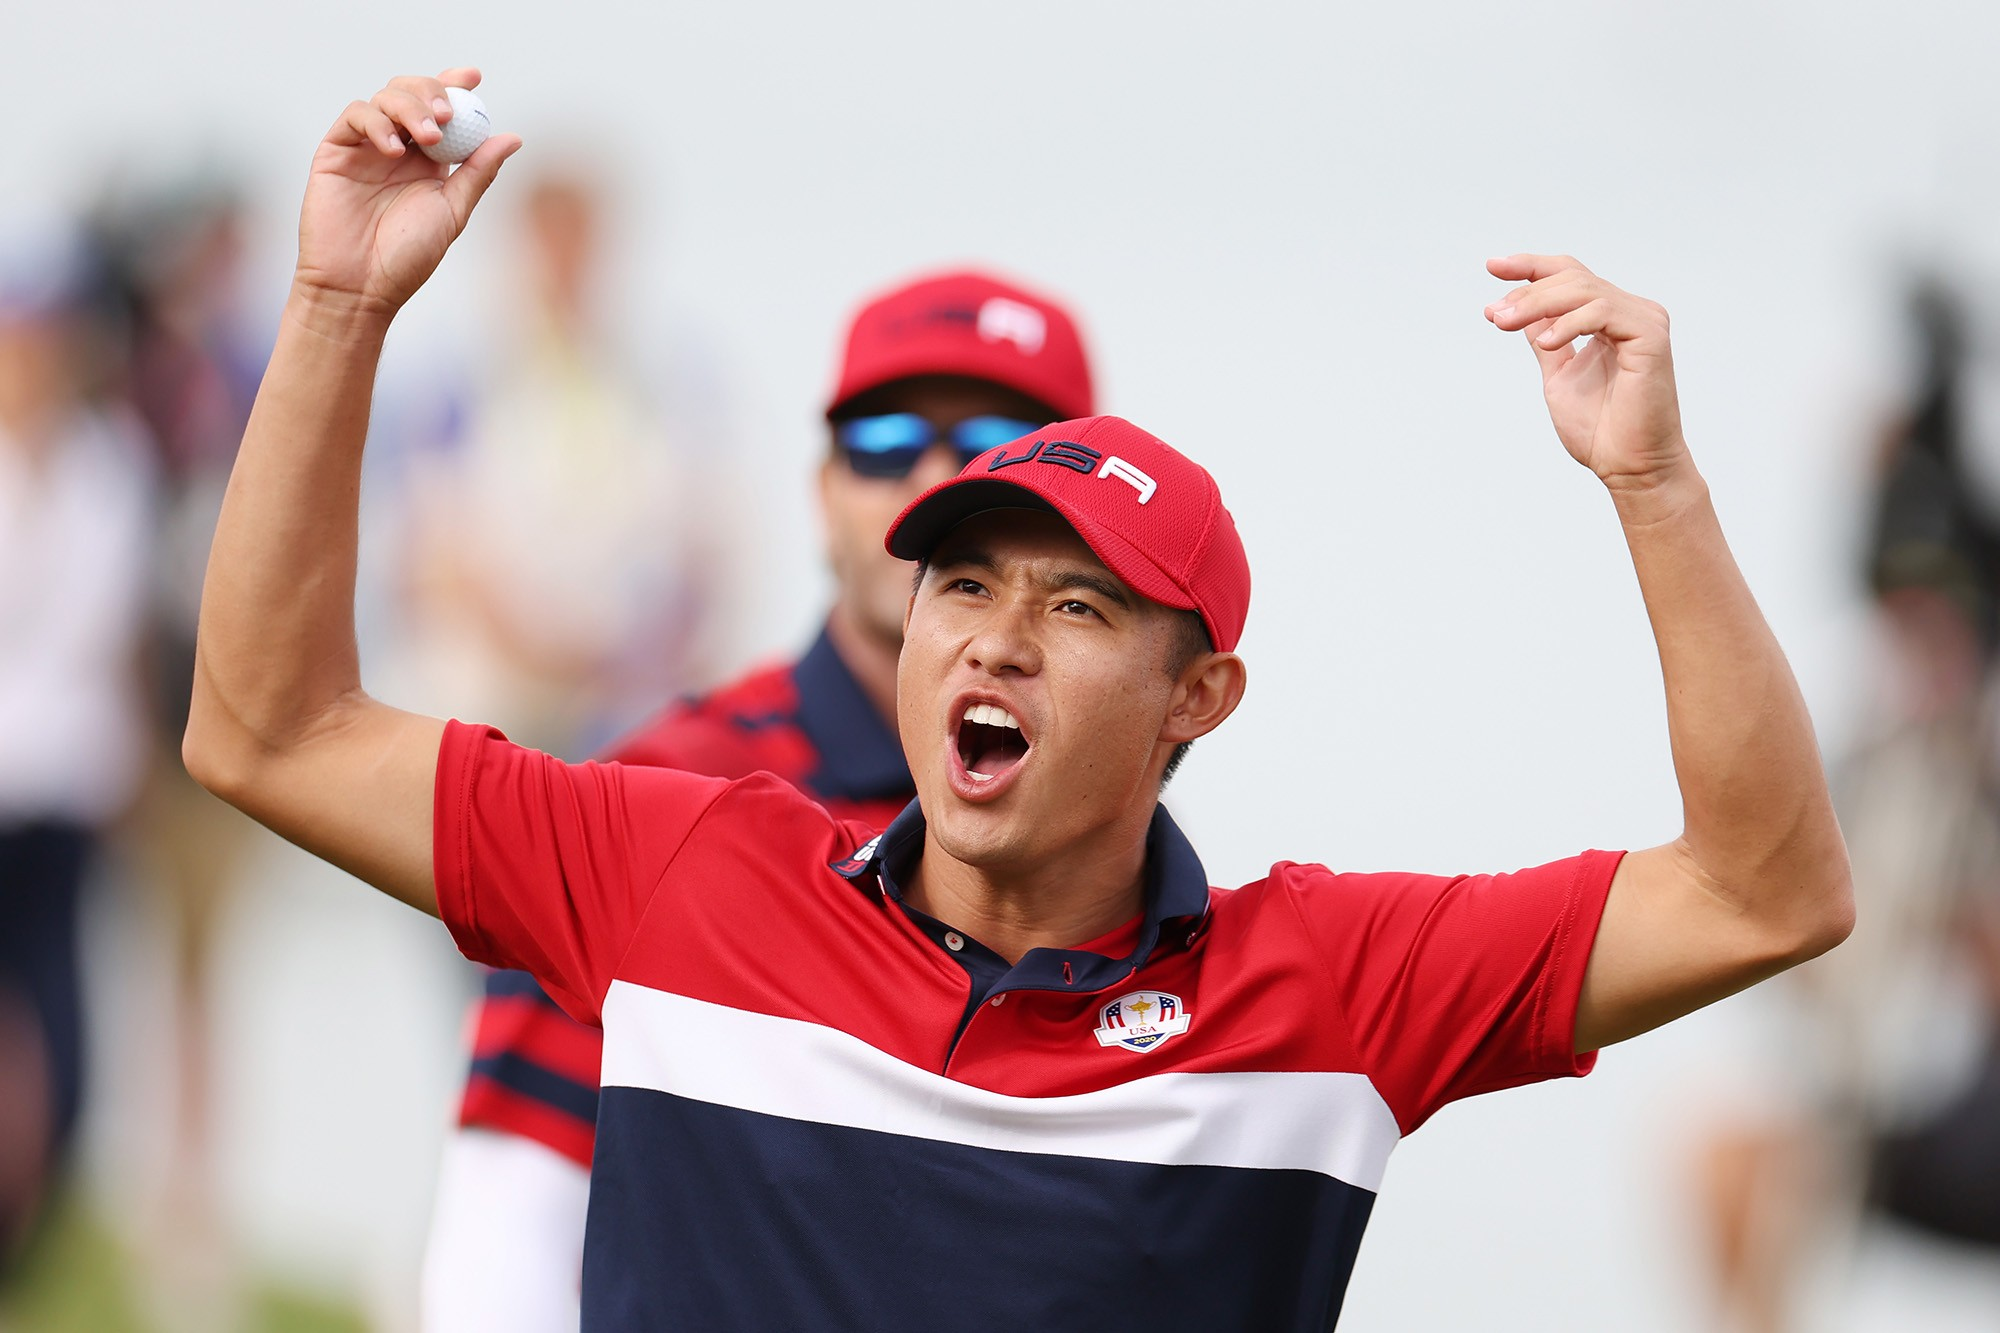 US wins Ryder Cup over Europe in dominant fashion